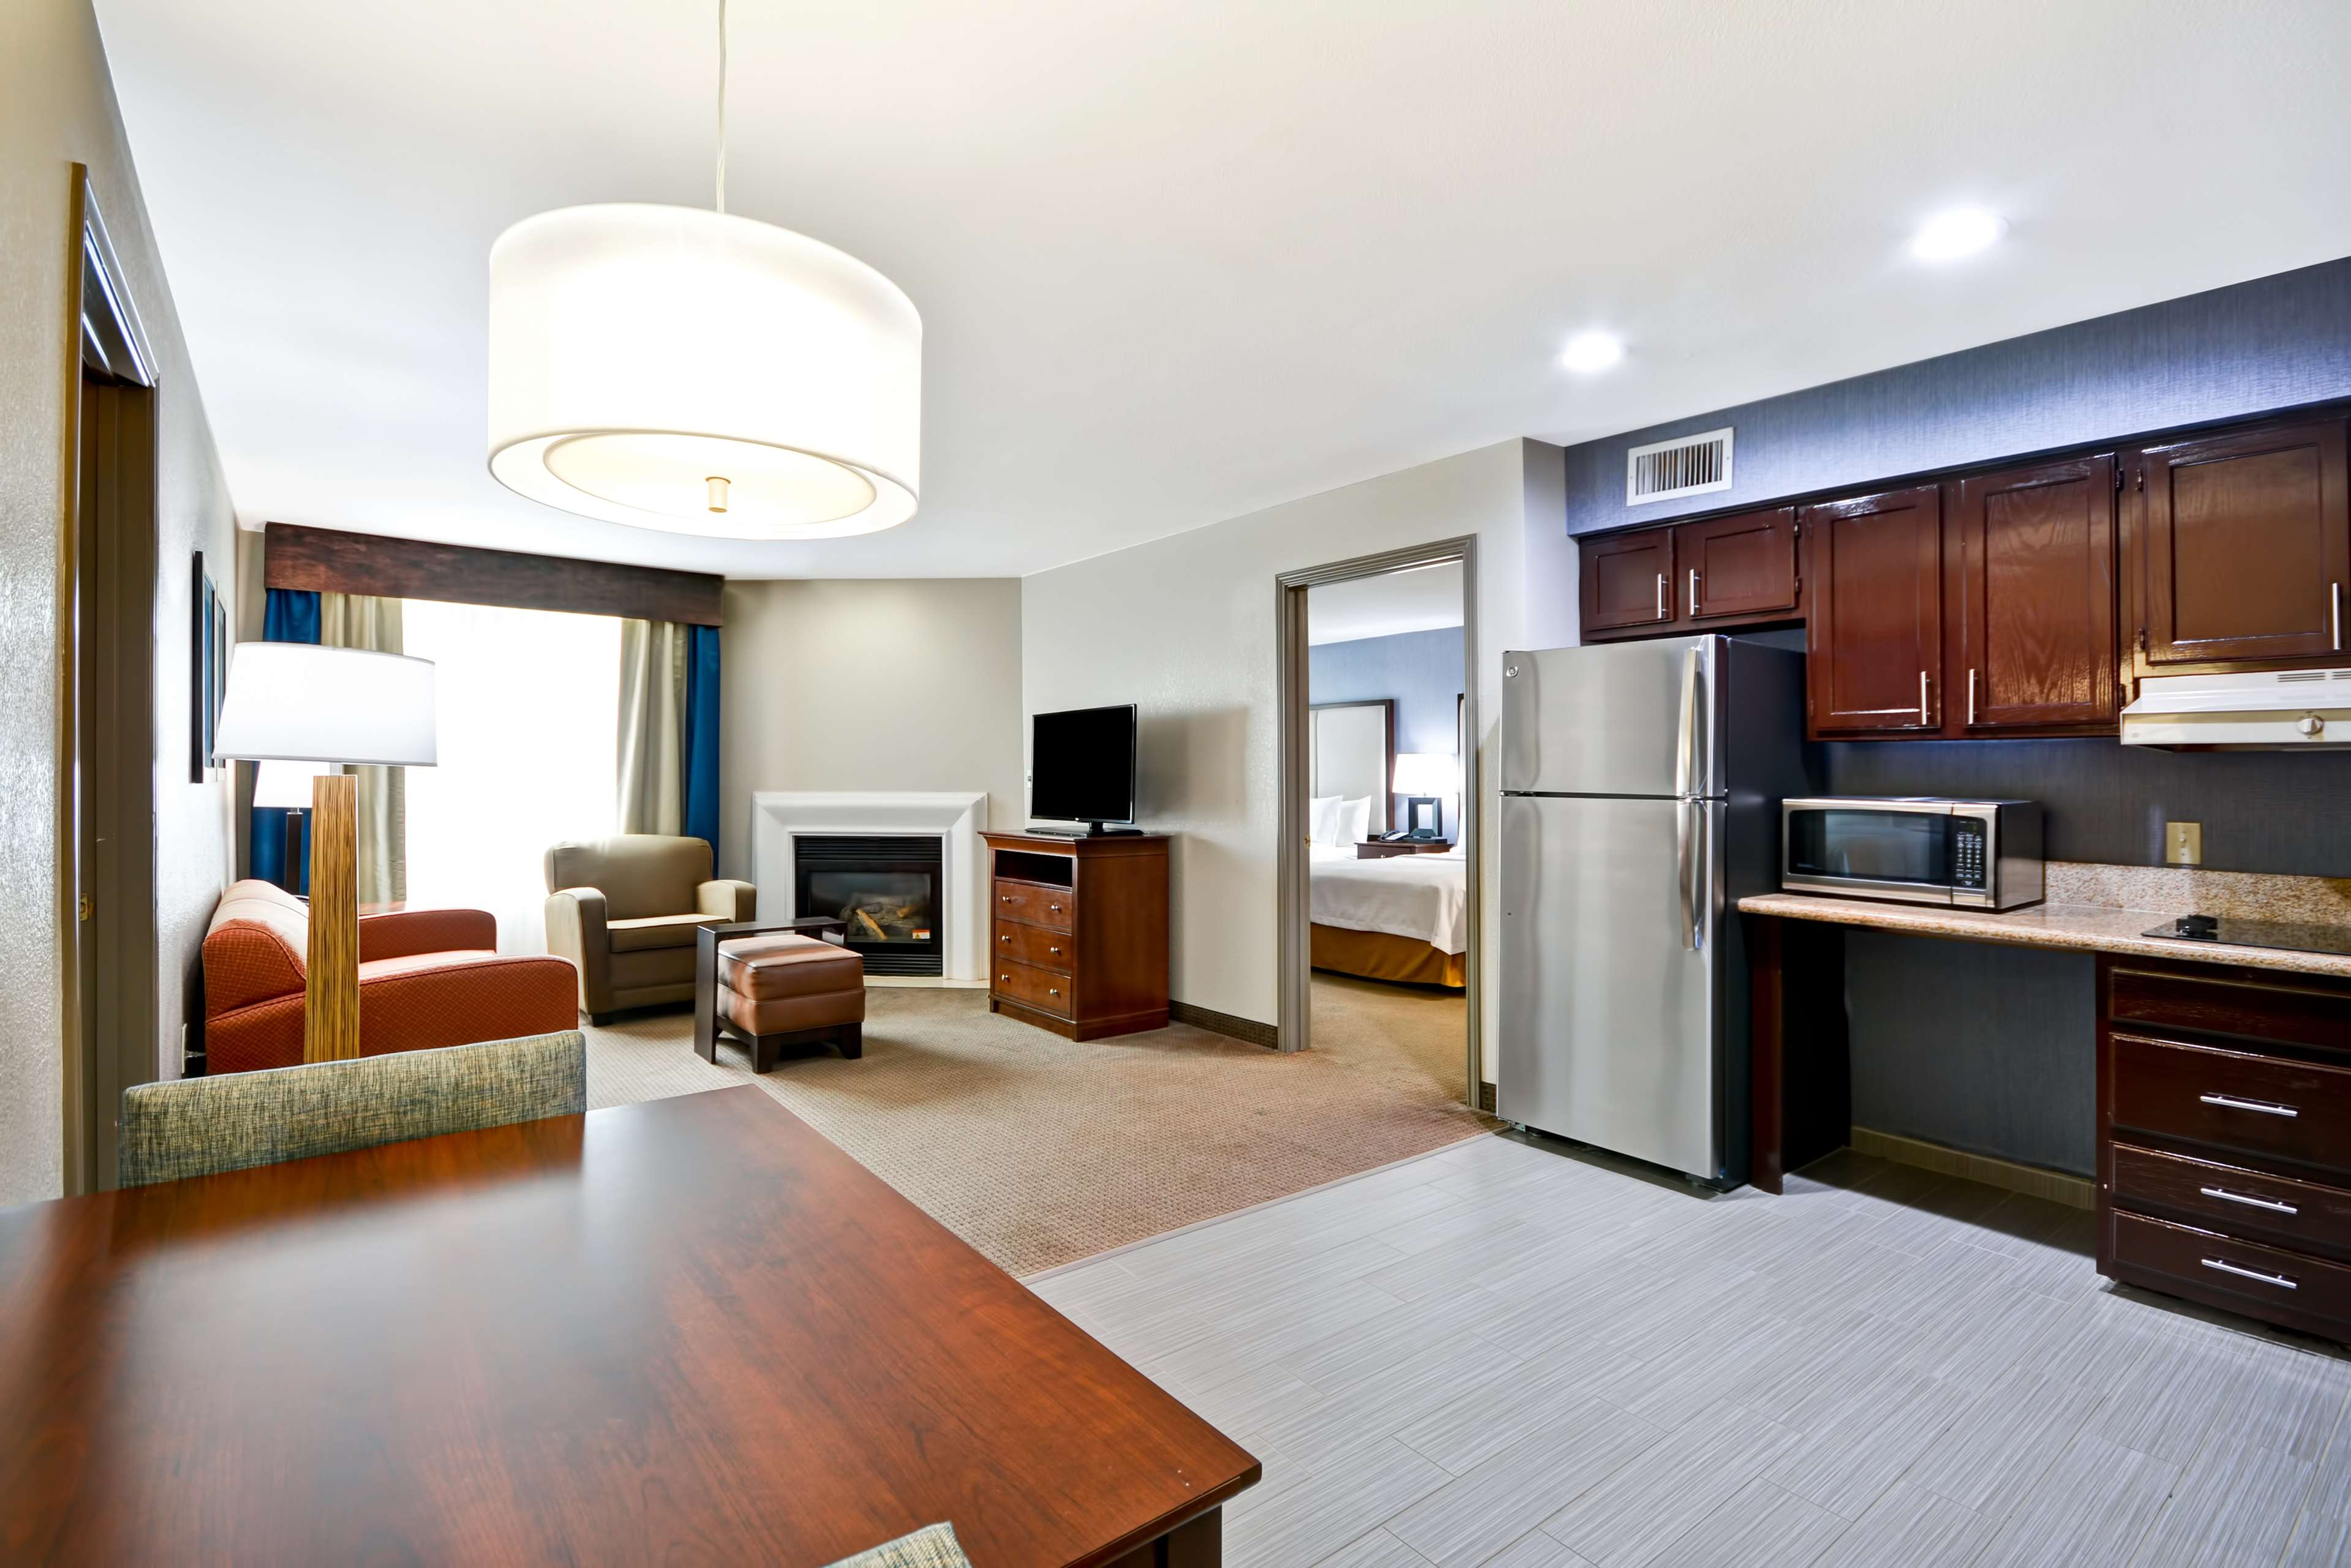 Homewood Suites by Hilton Dallas-Lewisville image 22